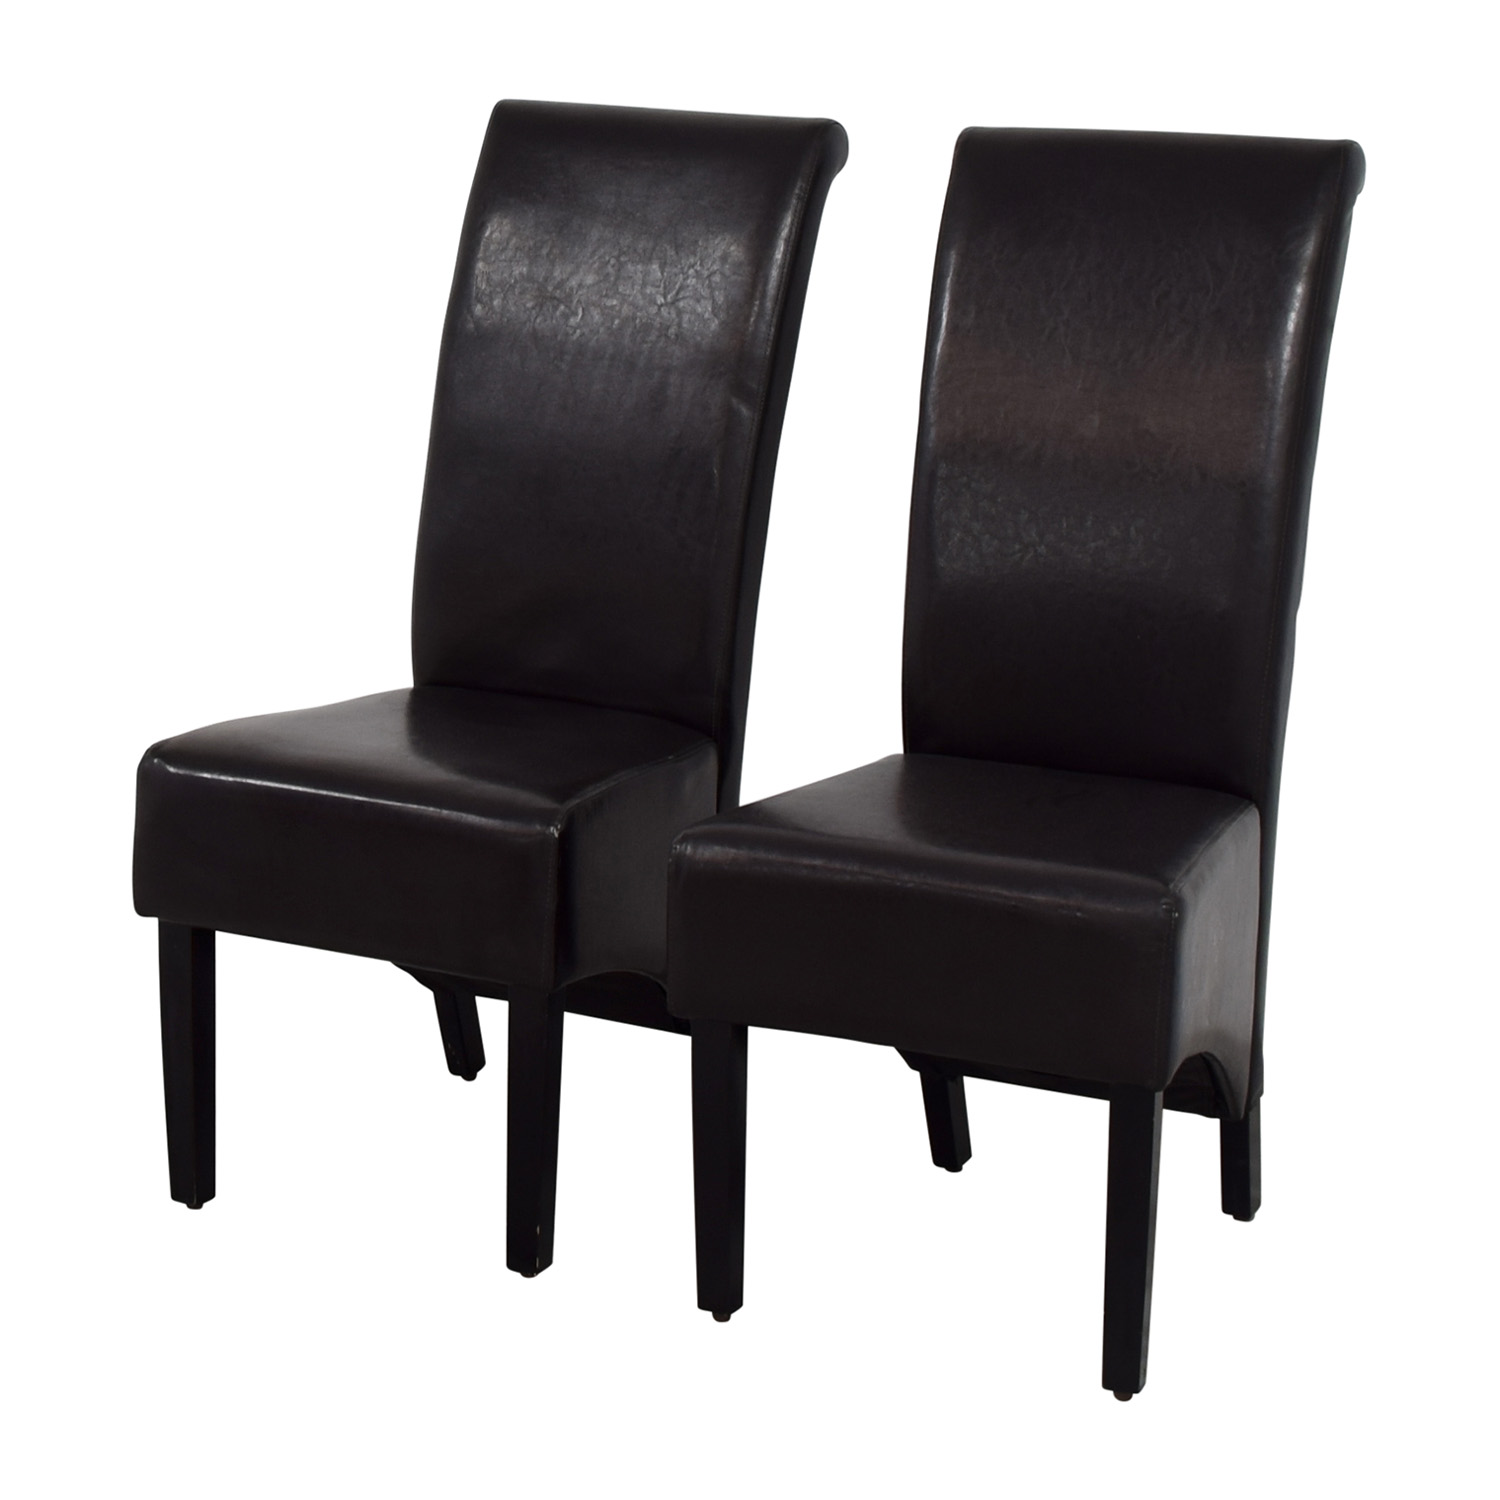 Padded Brown Leatherette High Back Dining Chairs nyc